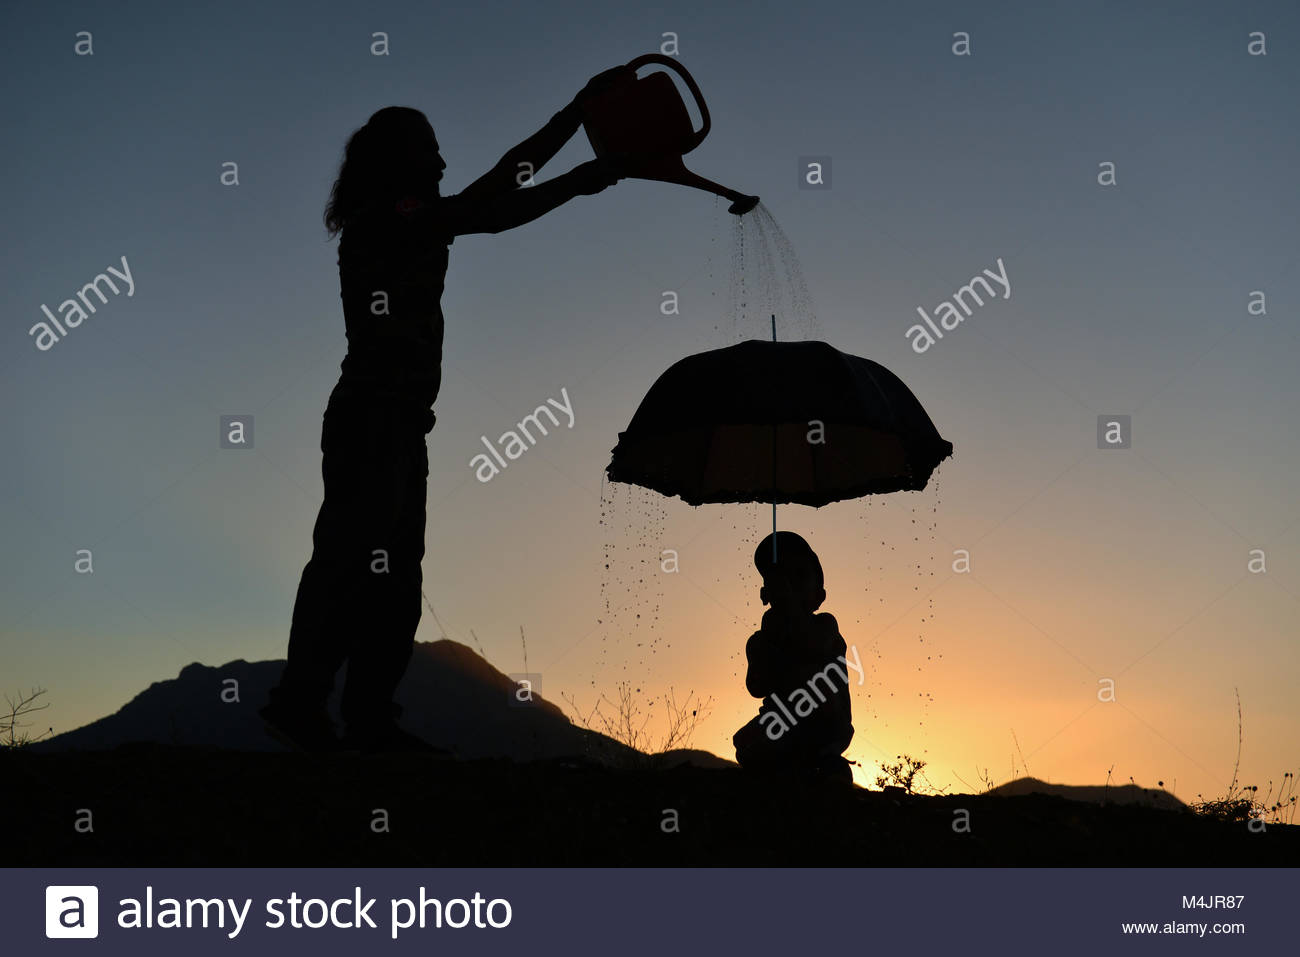 Practical training for a father's child - Stock Image